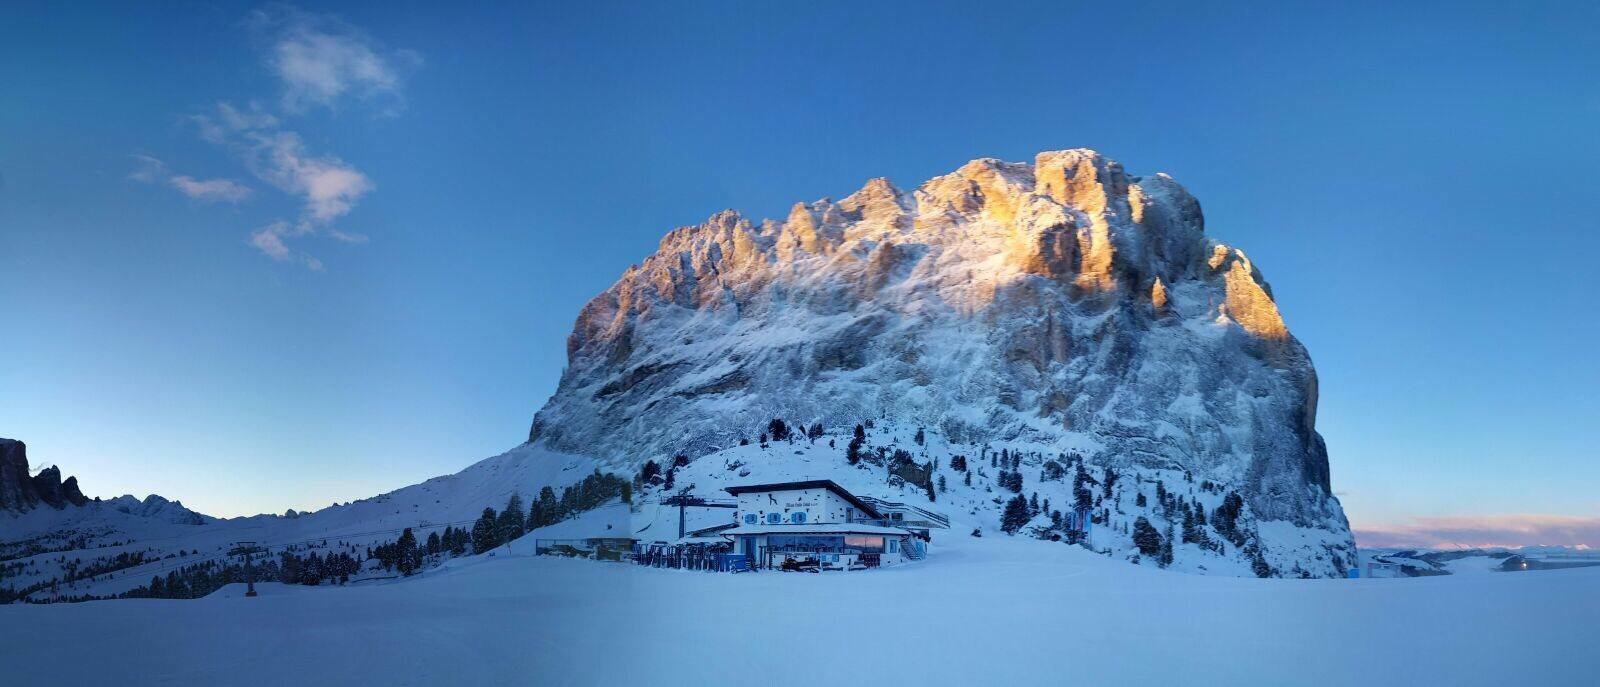 Dolomiti Superski - Gennaio 2016 - © Dolomiti Superski